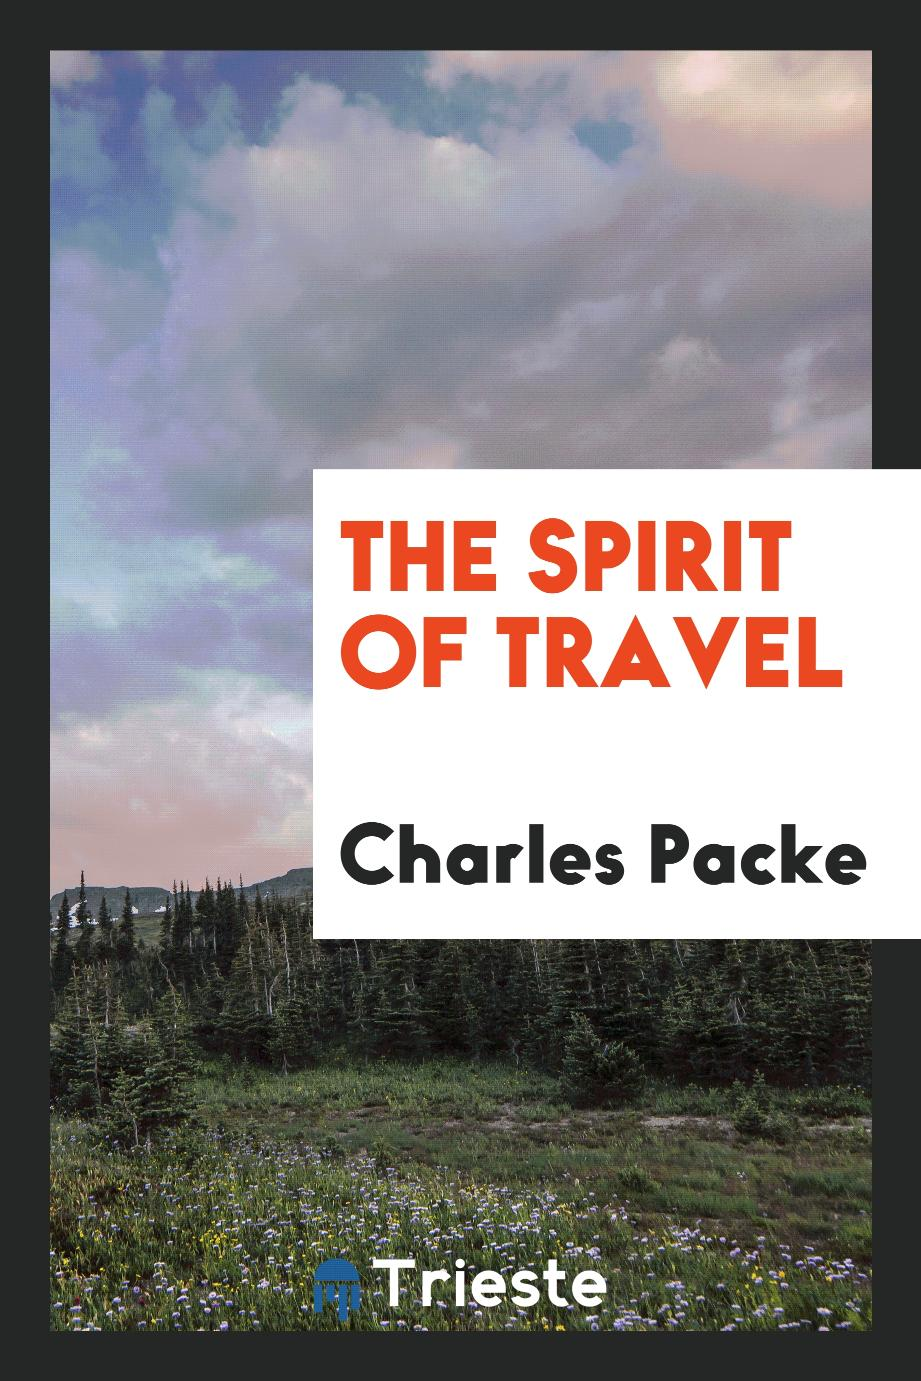 The Spirit of Travel